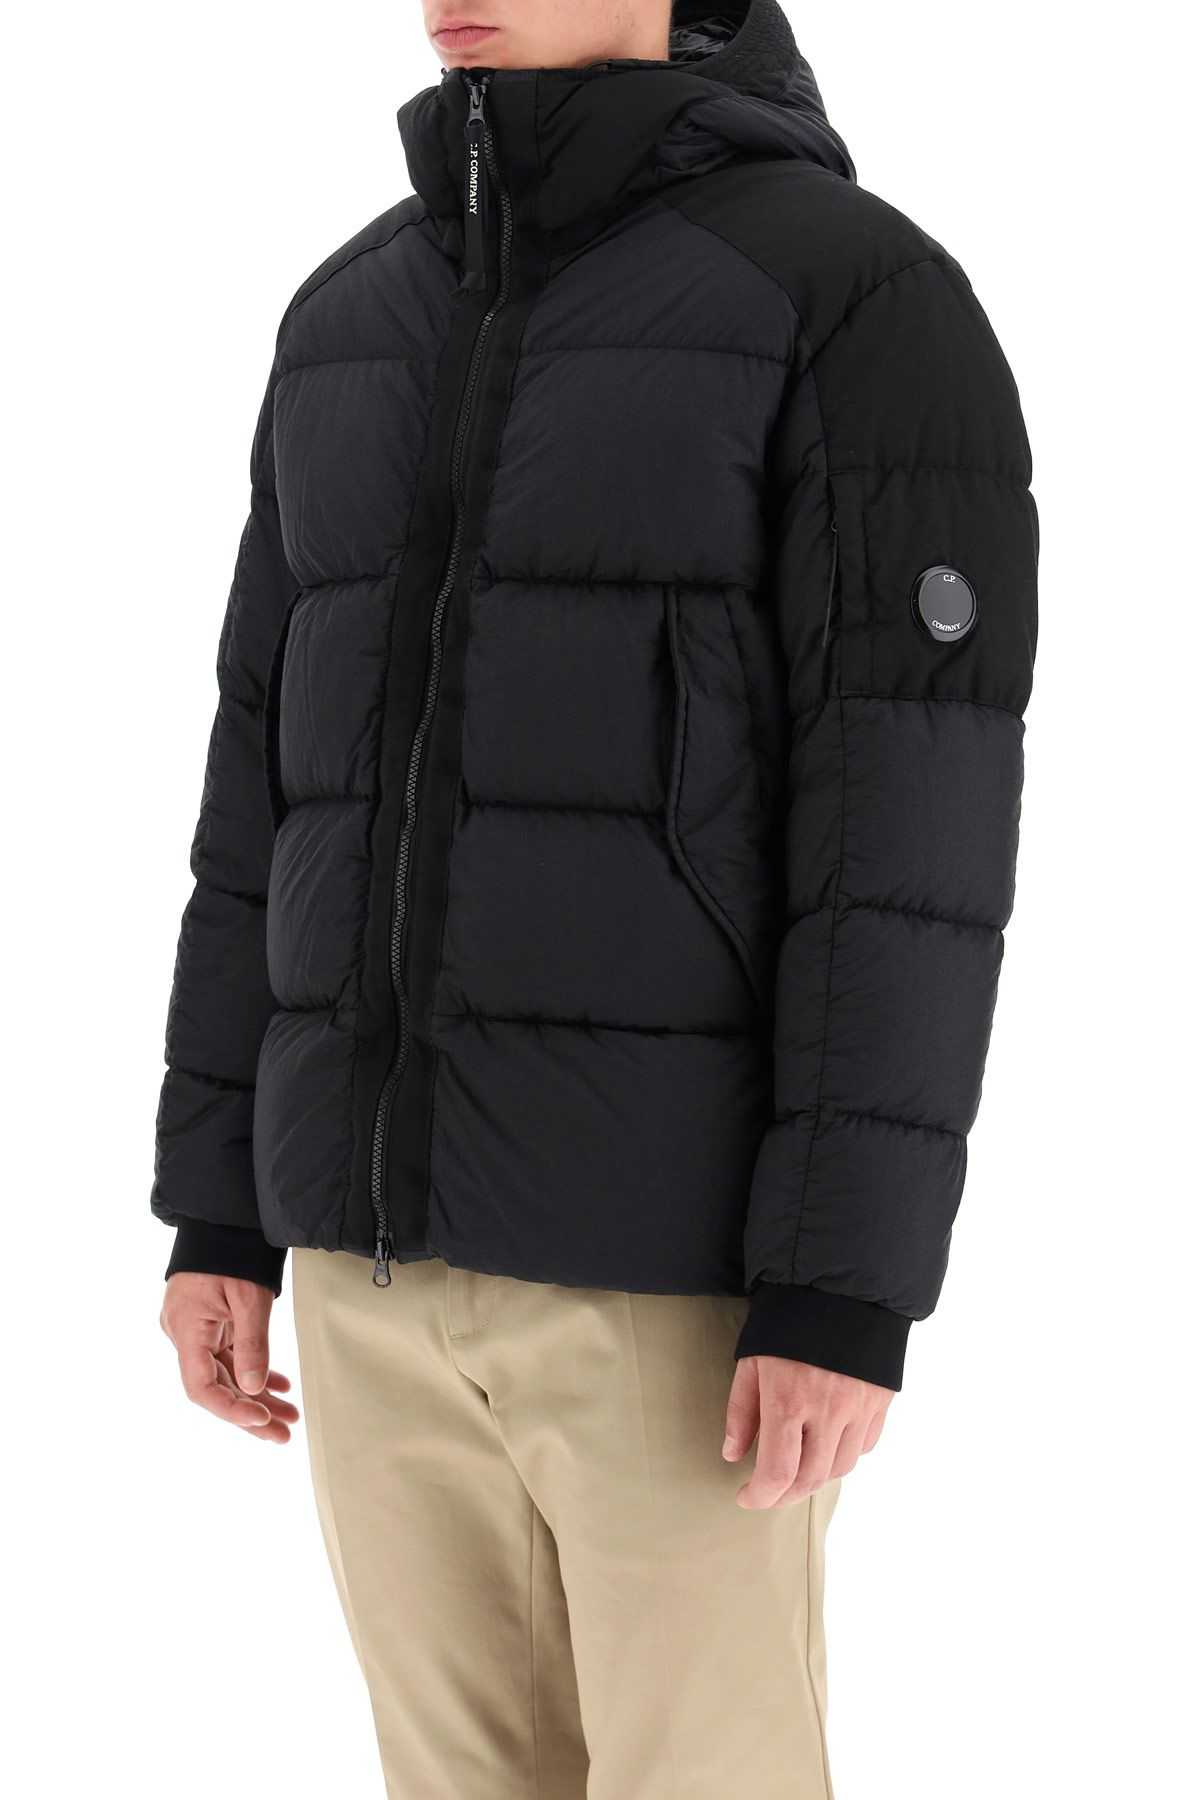 cp company clothing men hooded down jacket